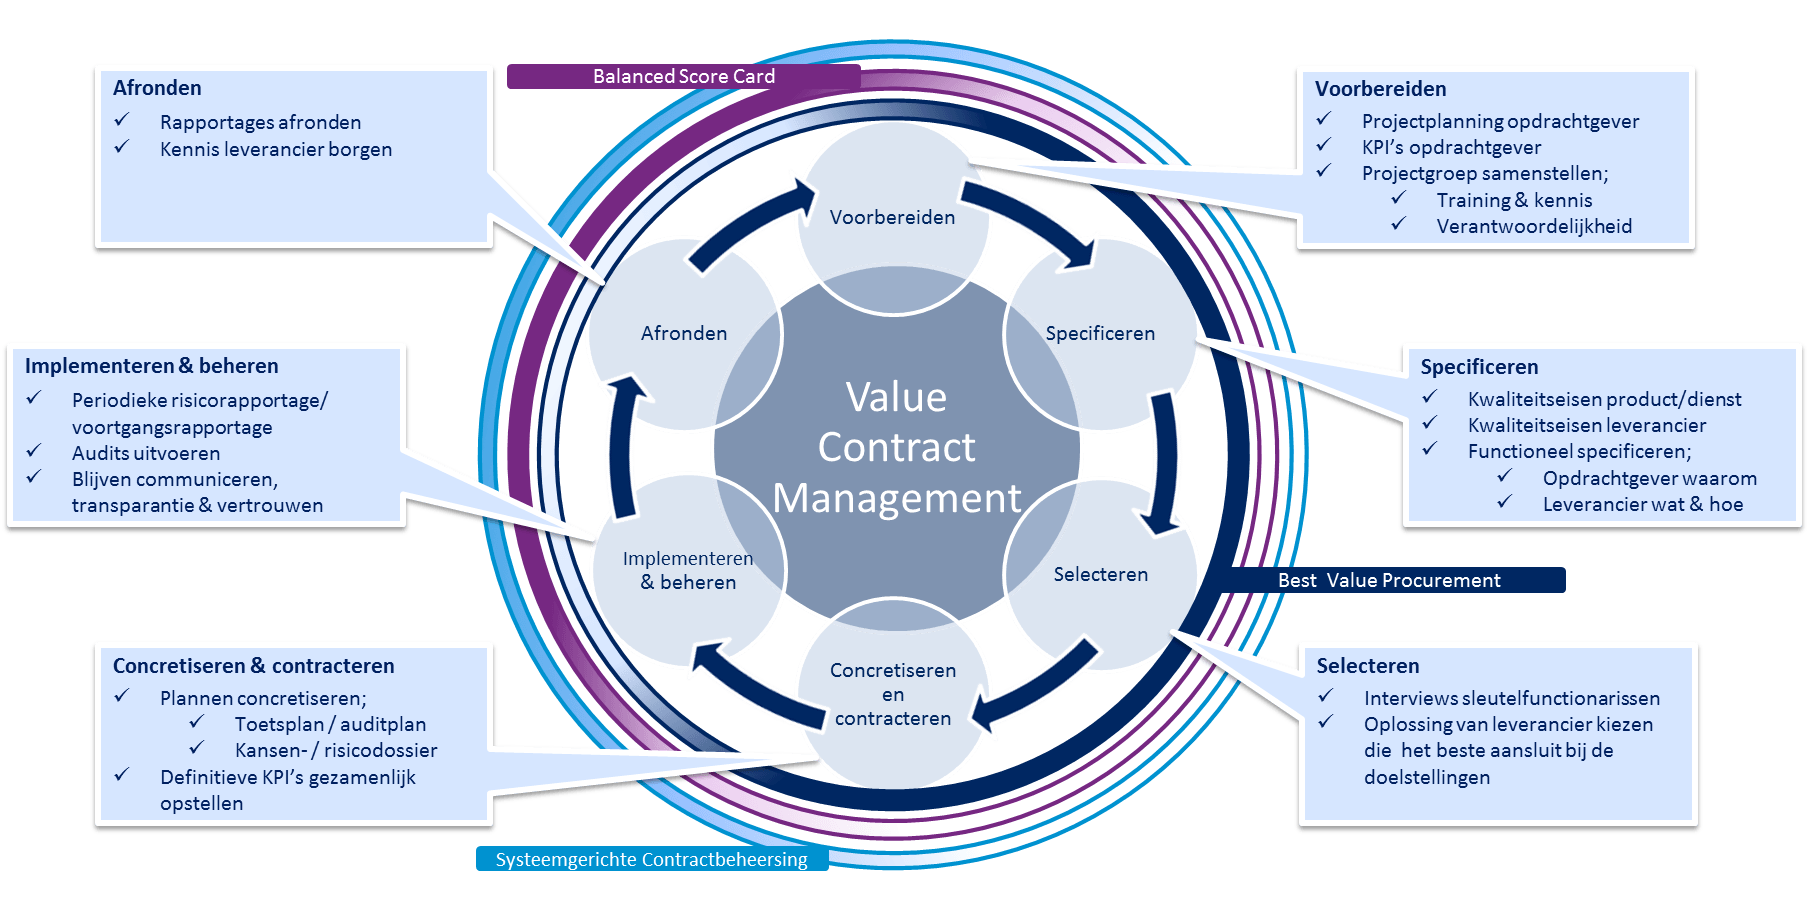 Value Contract Management